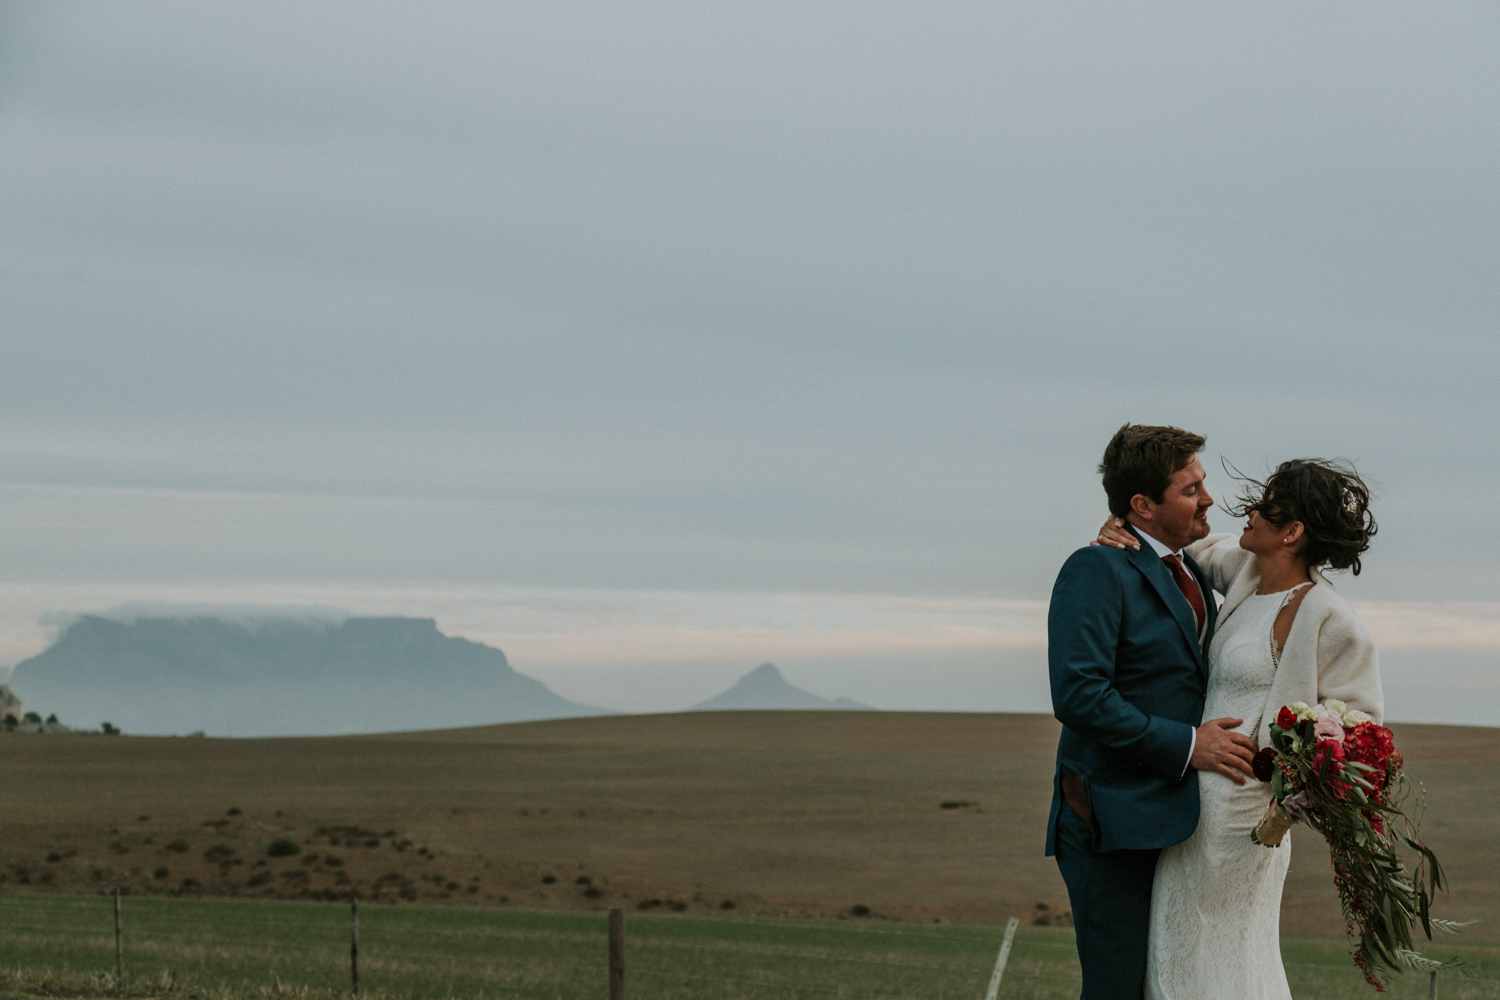 Cape Town Winter Wedding - Bianca Asher Photography-114.jpg